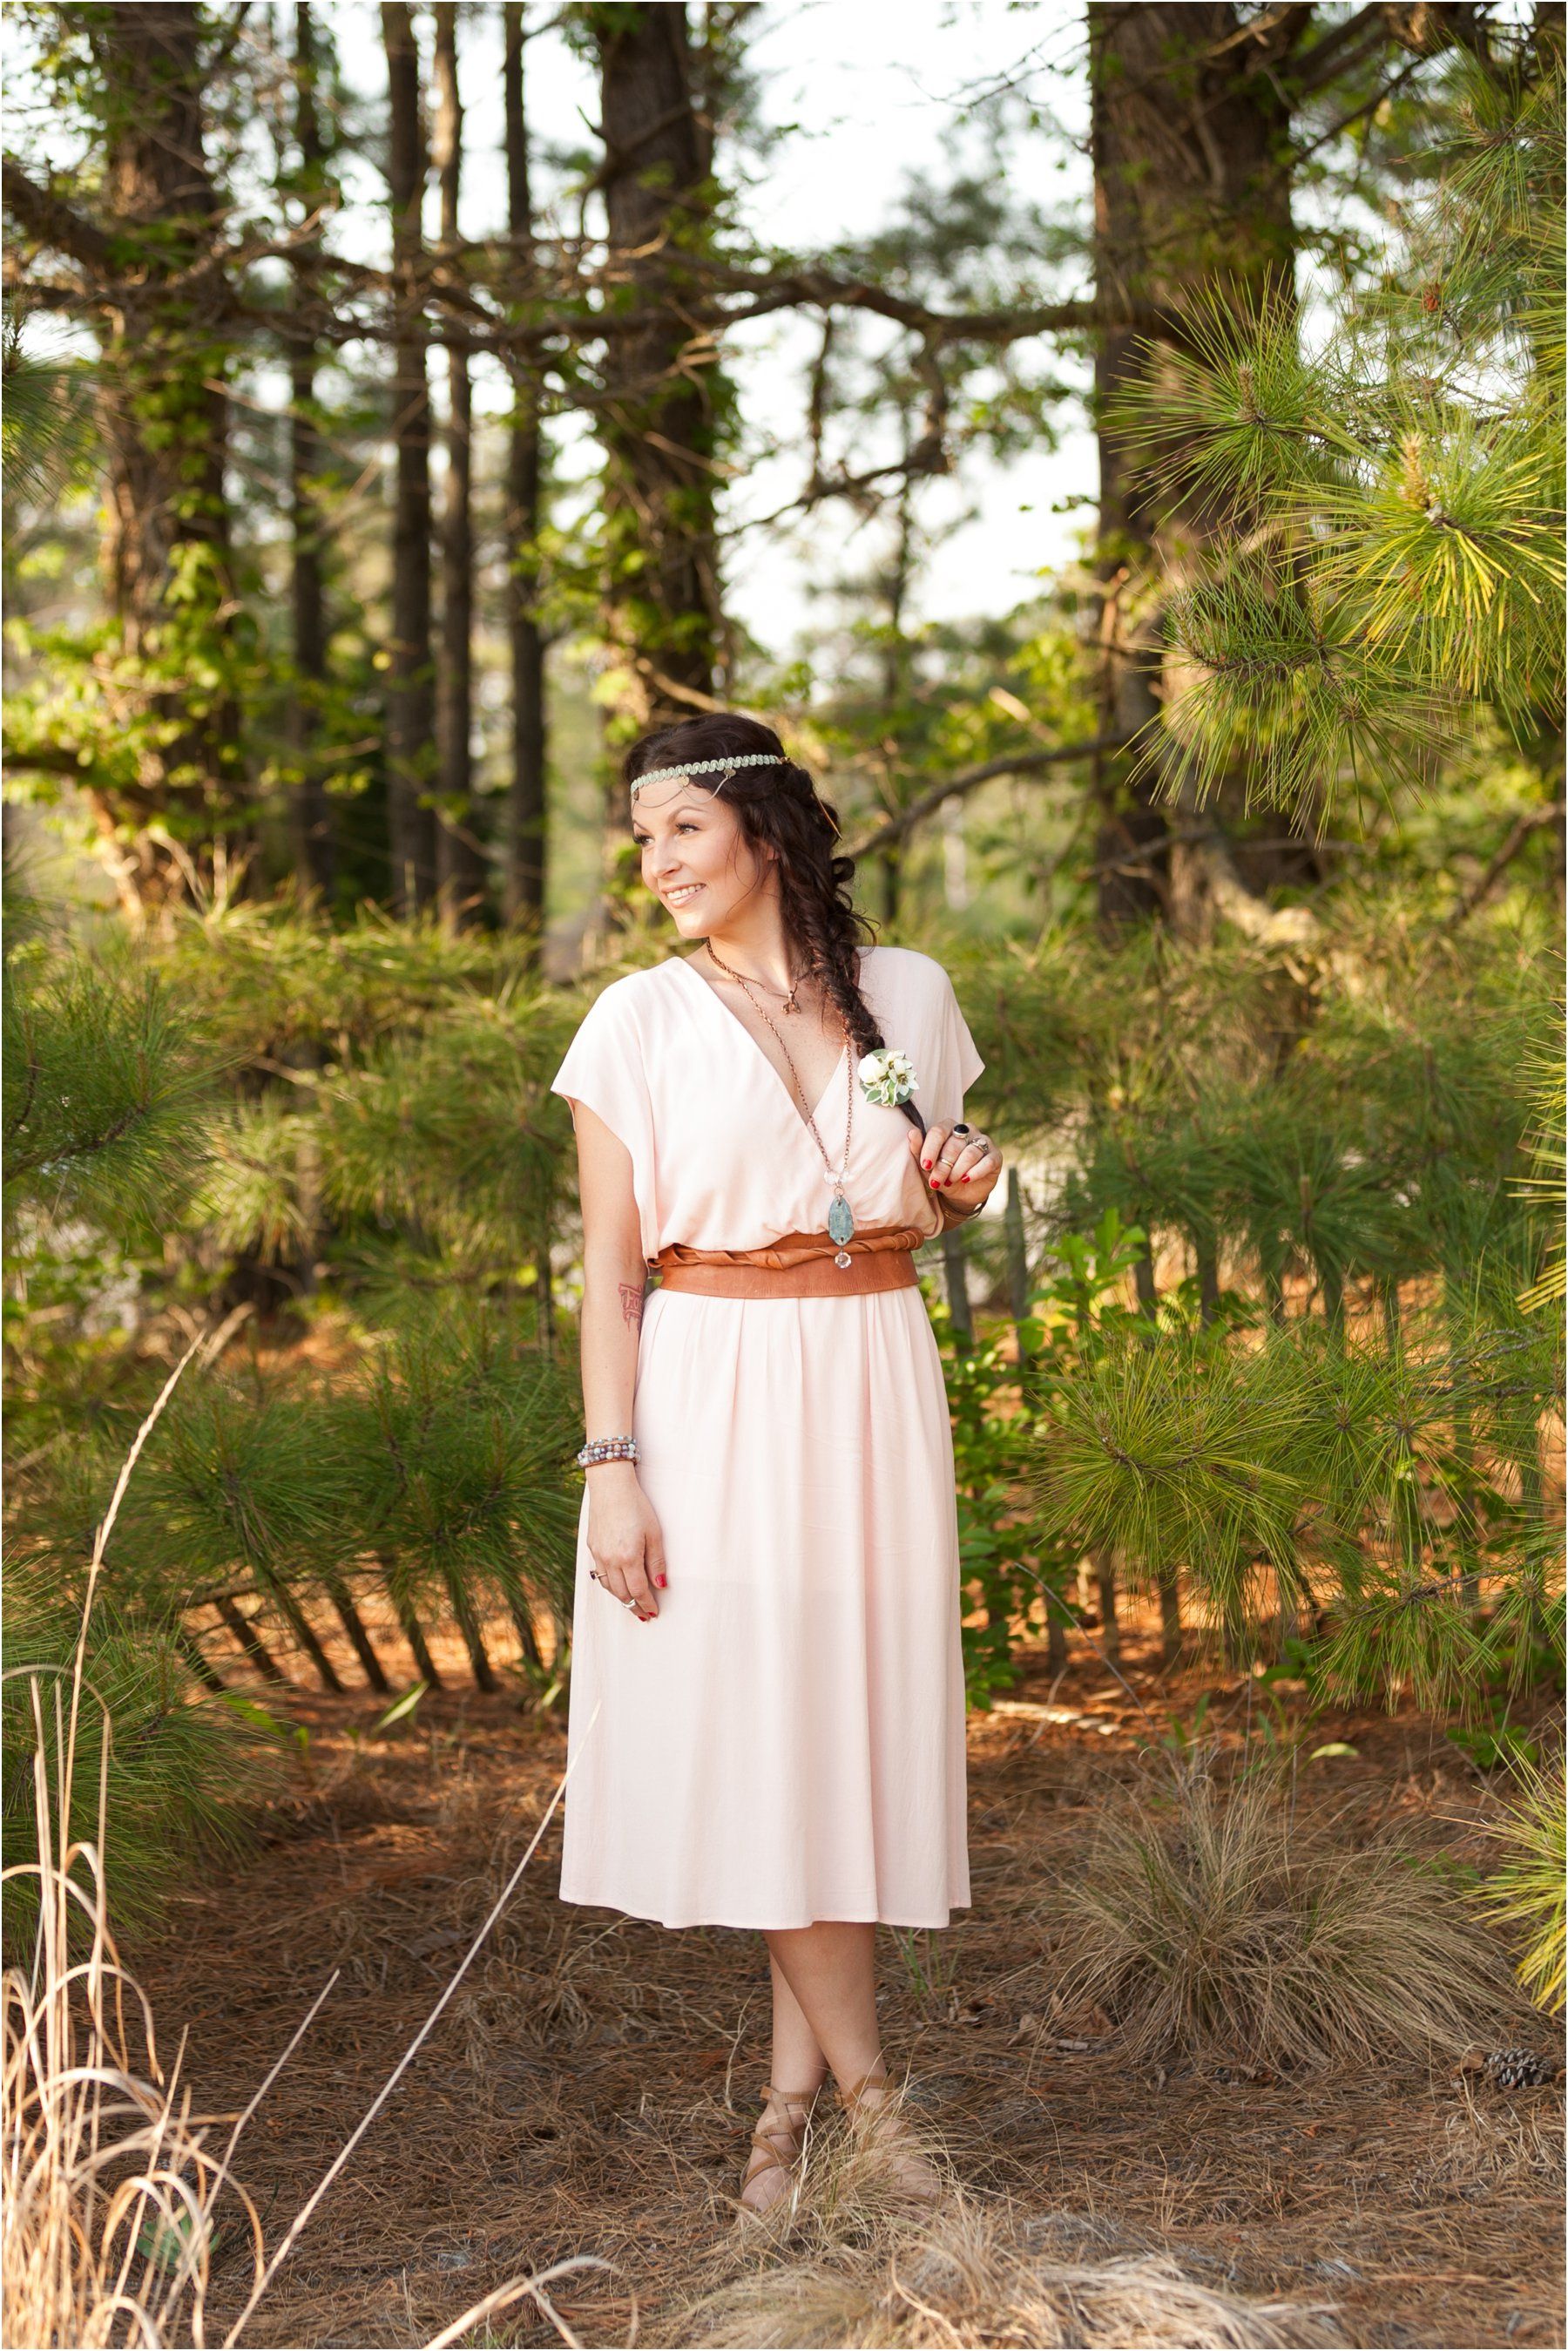 Nofolk_Zoo_engagement_photography_virginia_Jessica_ryan_photography_0164